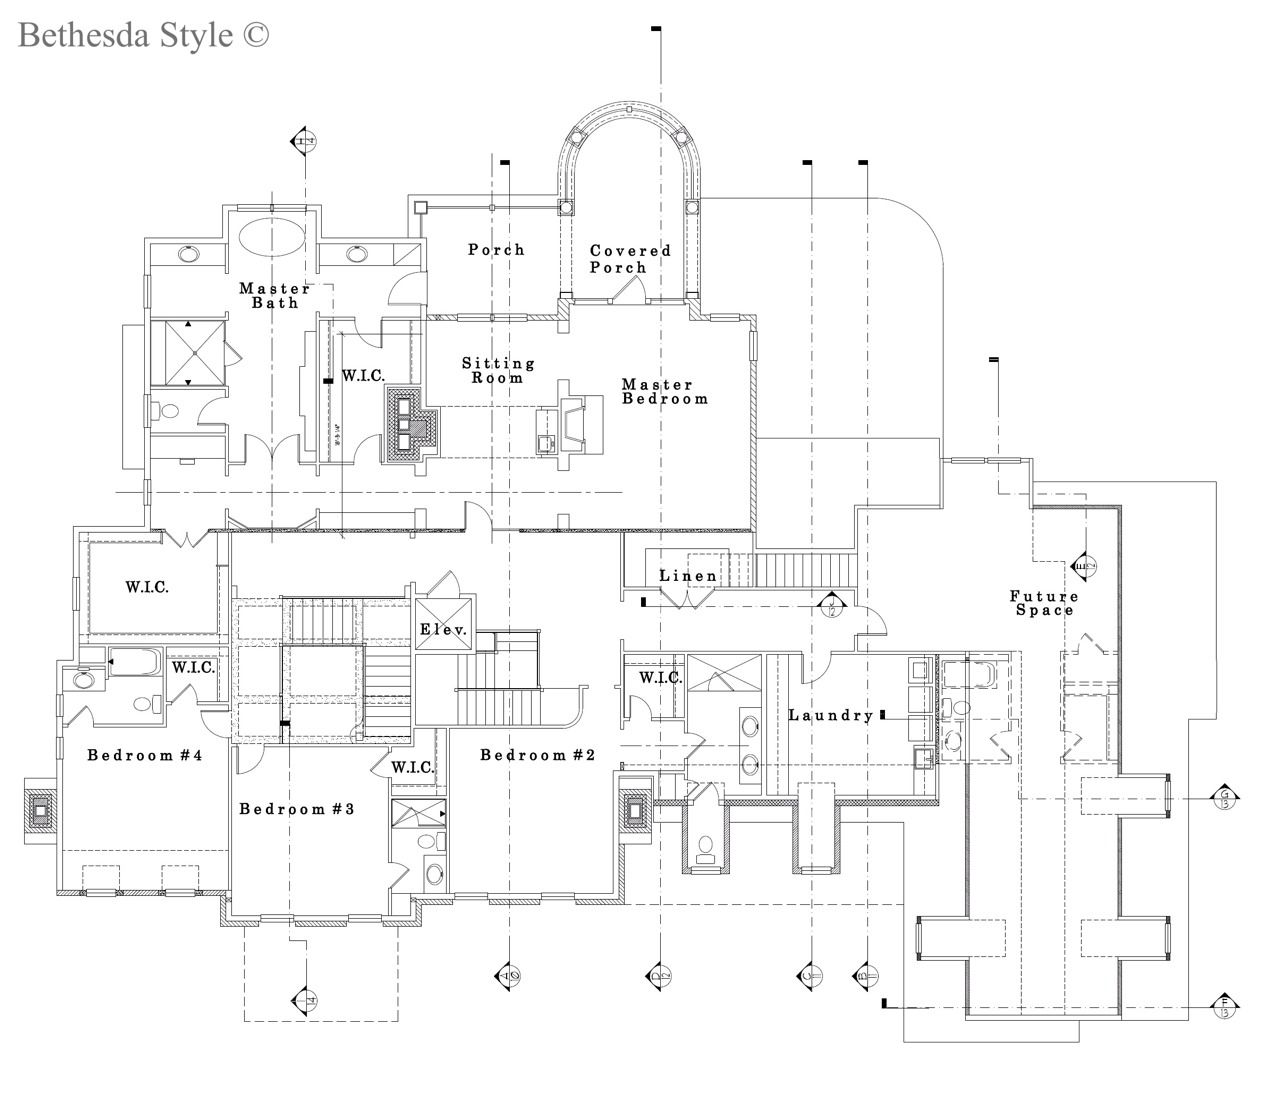 Bethesdastyle Our House Plans Upper Floor Plan Www Syaa Com Syaa Floor Plans House Plans Building A New Home